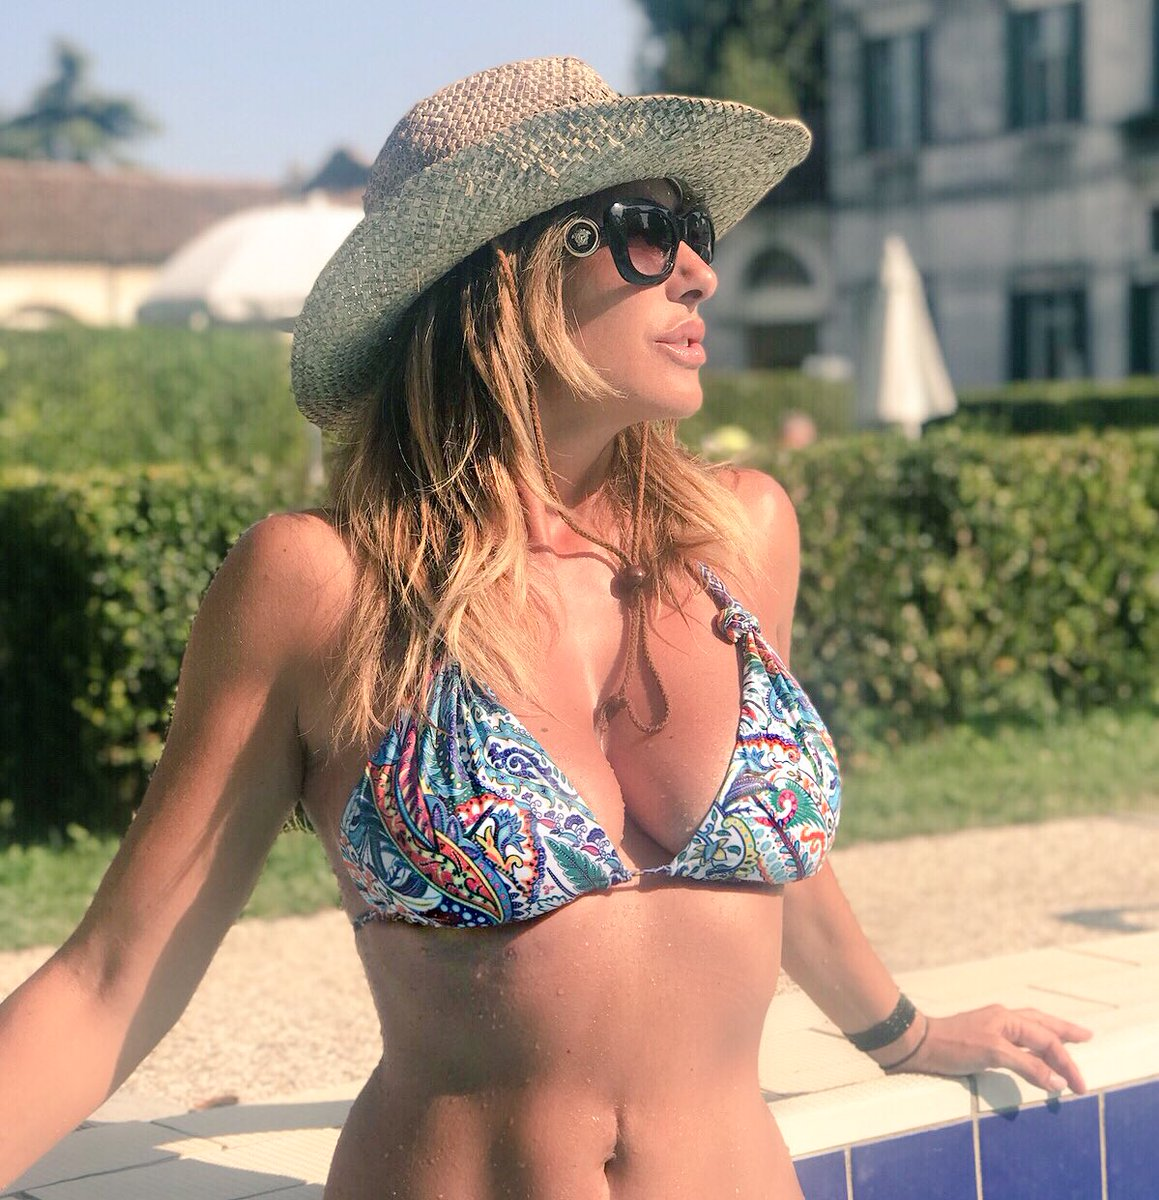 This summer  is .. #magic #summer2018 #sabrinasalerno #sabrina https://t.co/NGsoULmZNq